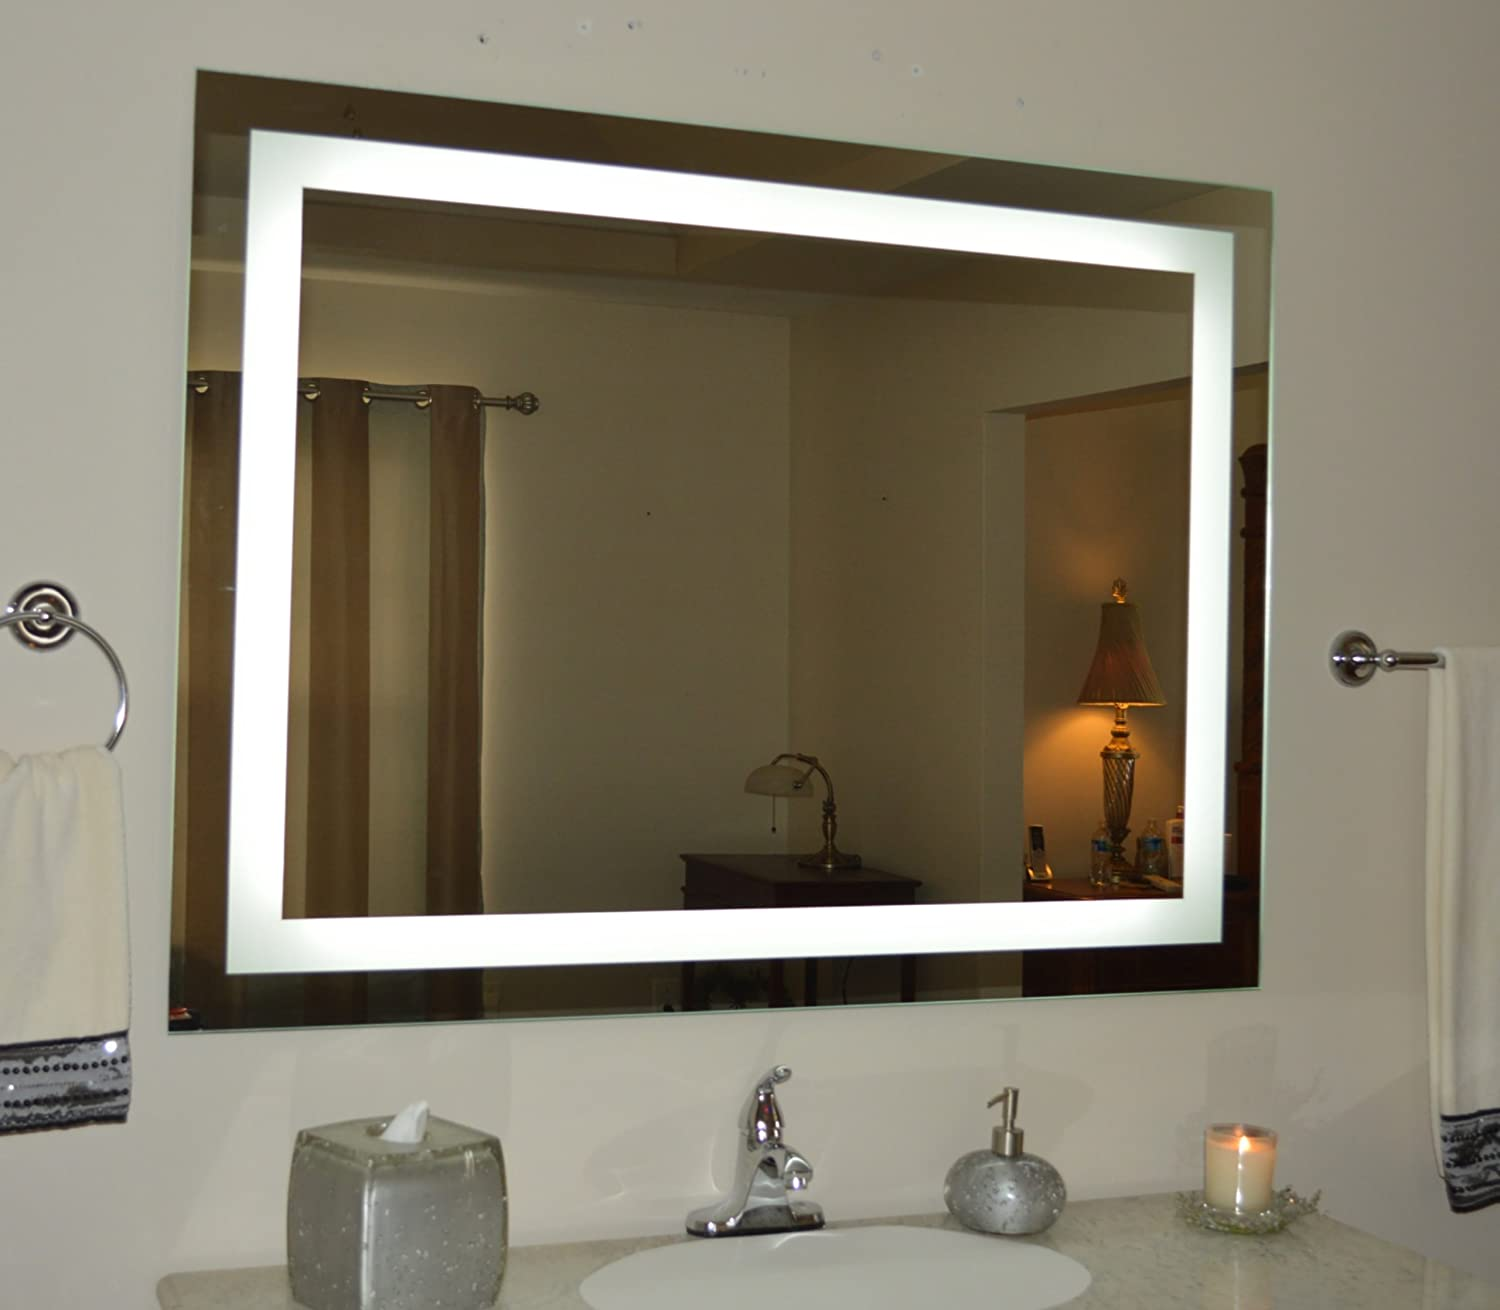 Exceptional 36 X 60 Mirror Part - 5: Amazon.com: Wall Mounted Lighted Vanity Mirror LED MAM84836 Commercial  Grade 48: Home U0026 Kitchen